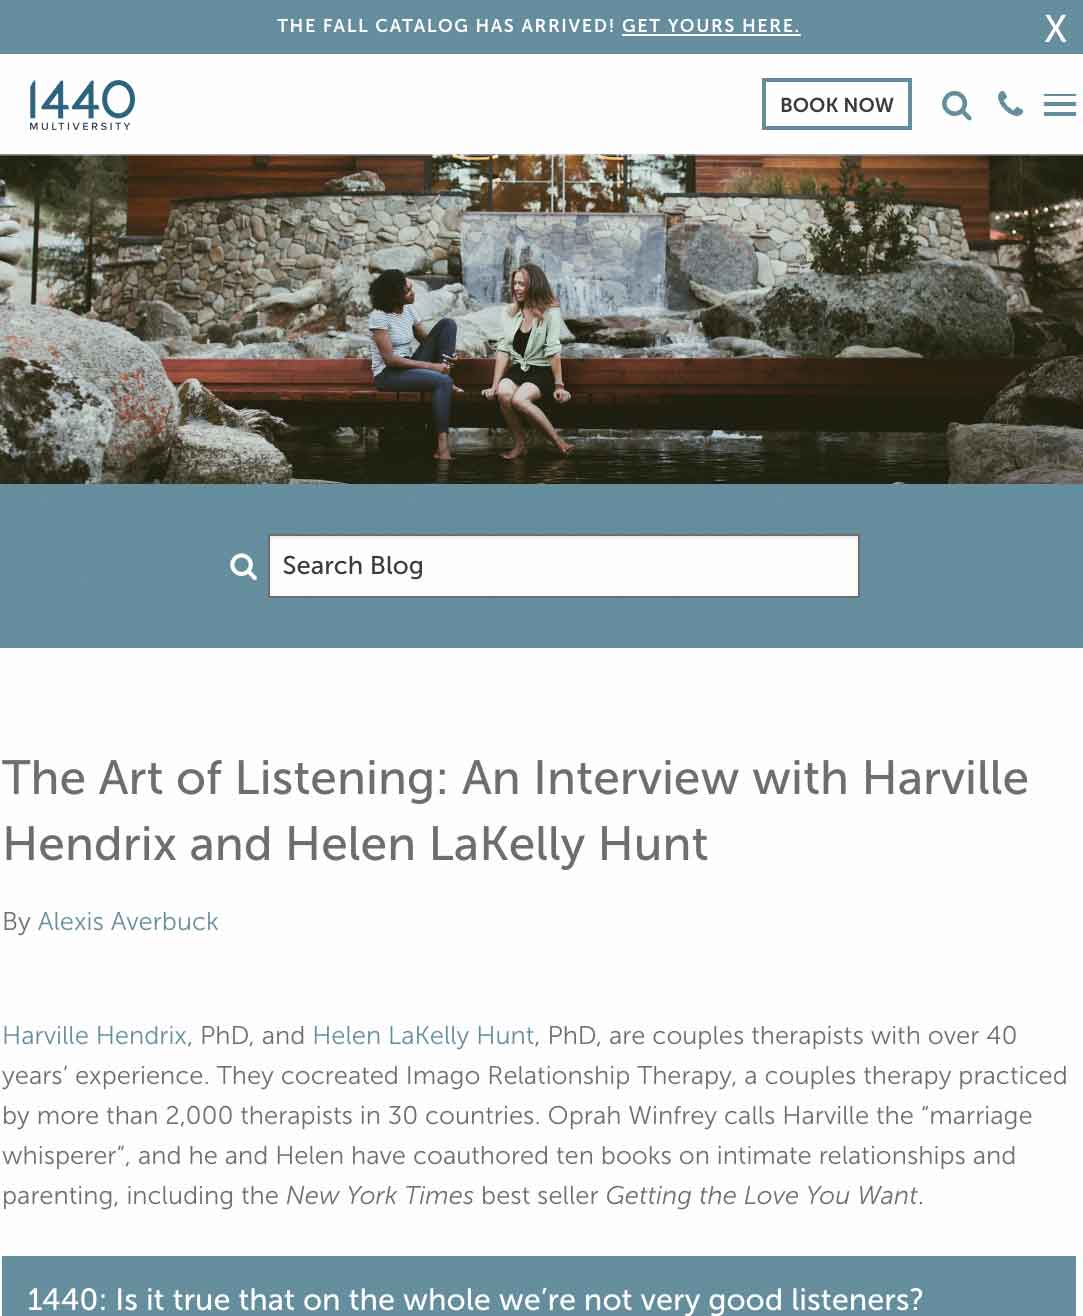 The Art of Listening Interview